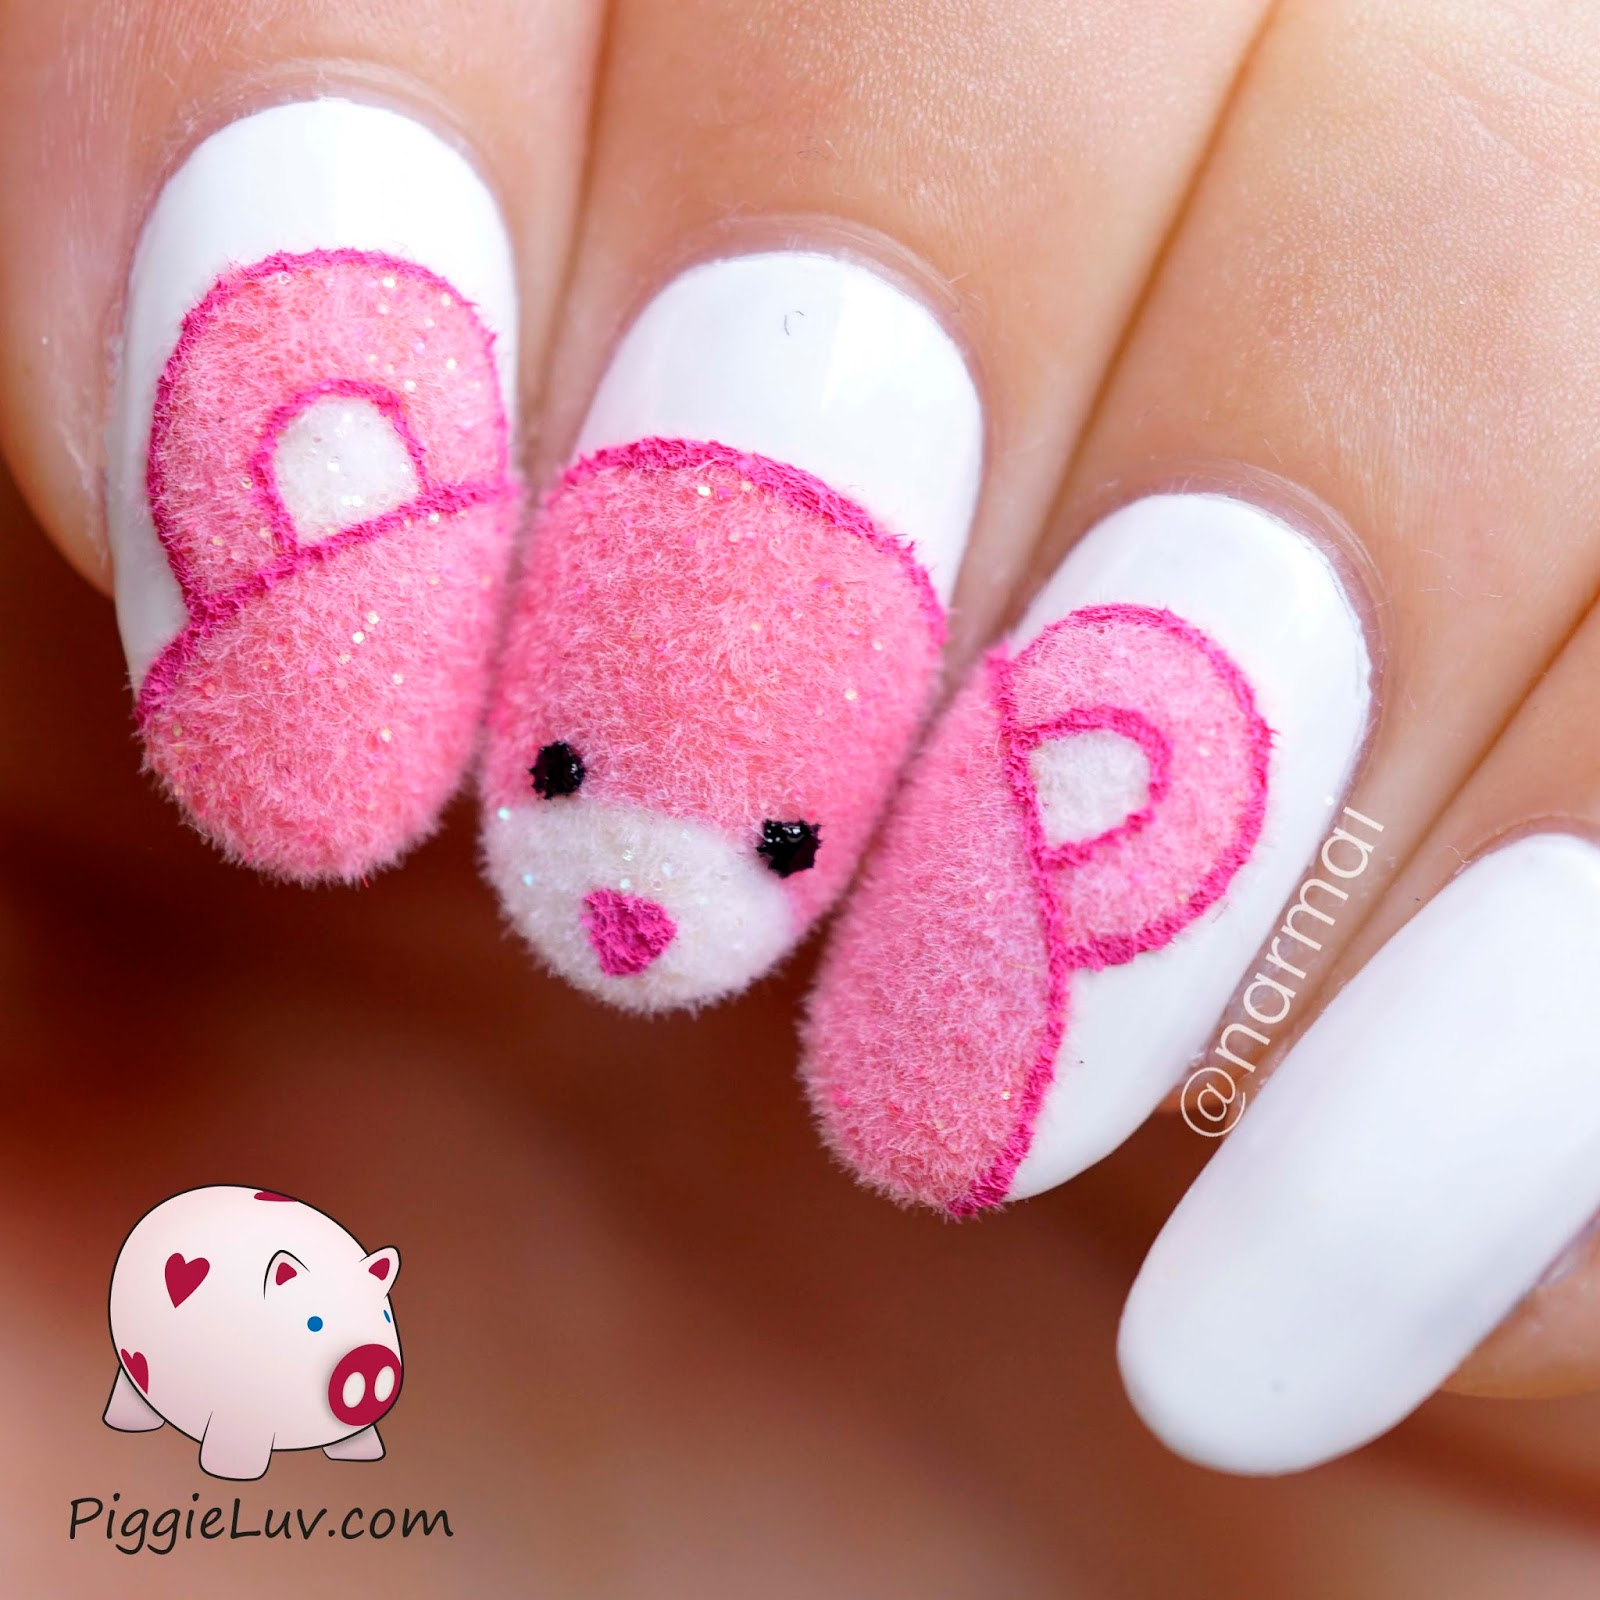 Piggieluv fuzzy pink teddy bear nail art my bestest of nail friends marlein made a little bear like this a while ago and i thought it was so adorable prinsesfo Gallery